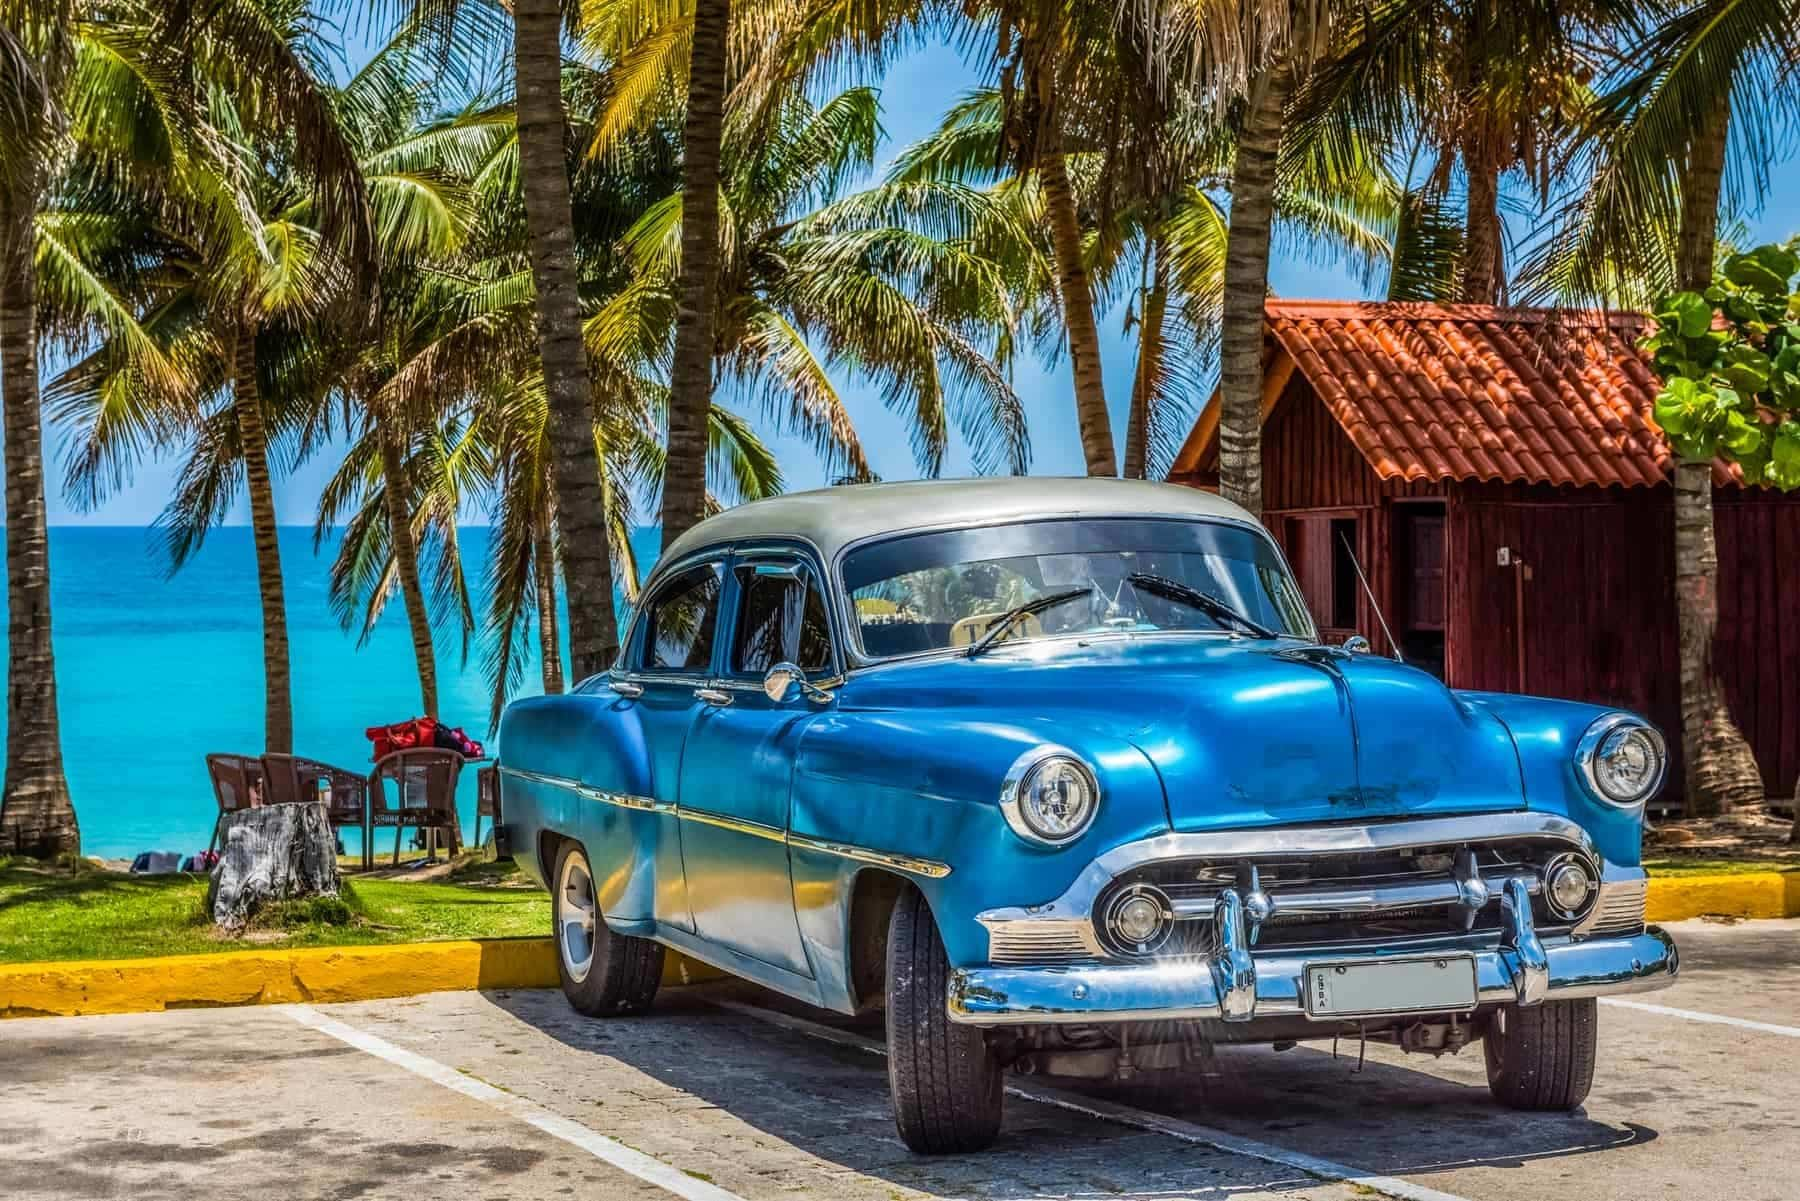 Varadero, Cuba - American blue Chevrolet classic car with silver roof parked on the beach in Varadero Cuba - Serie Cuba Reportage